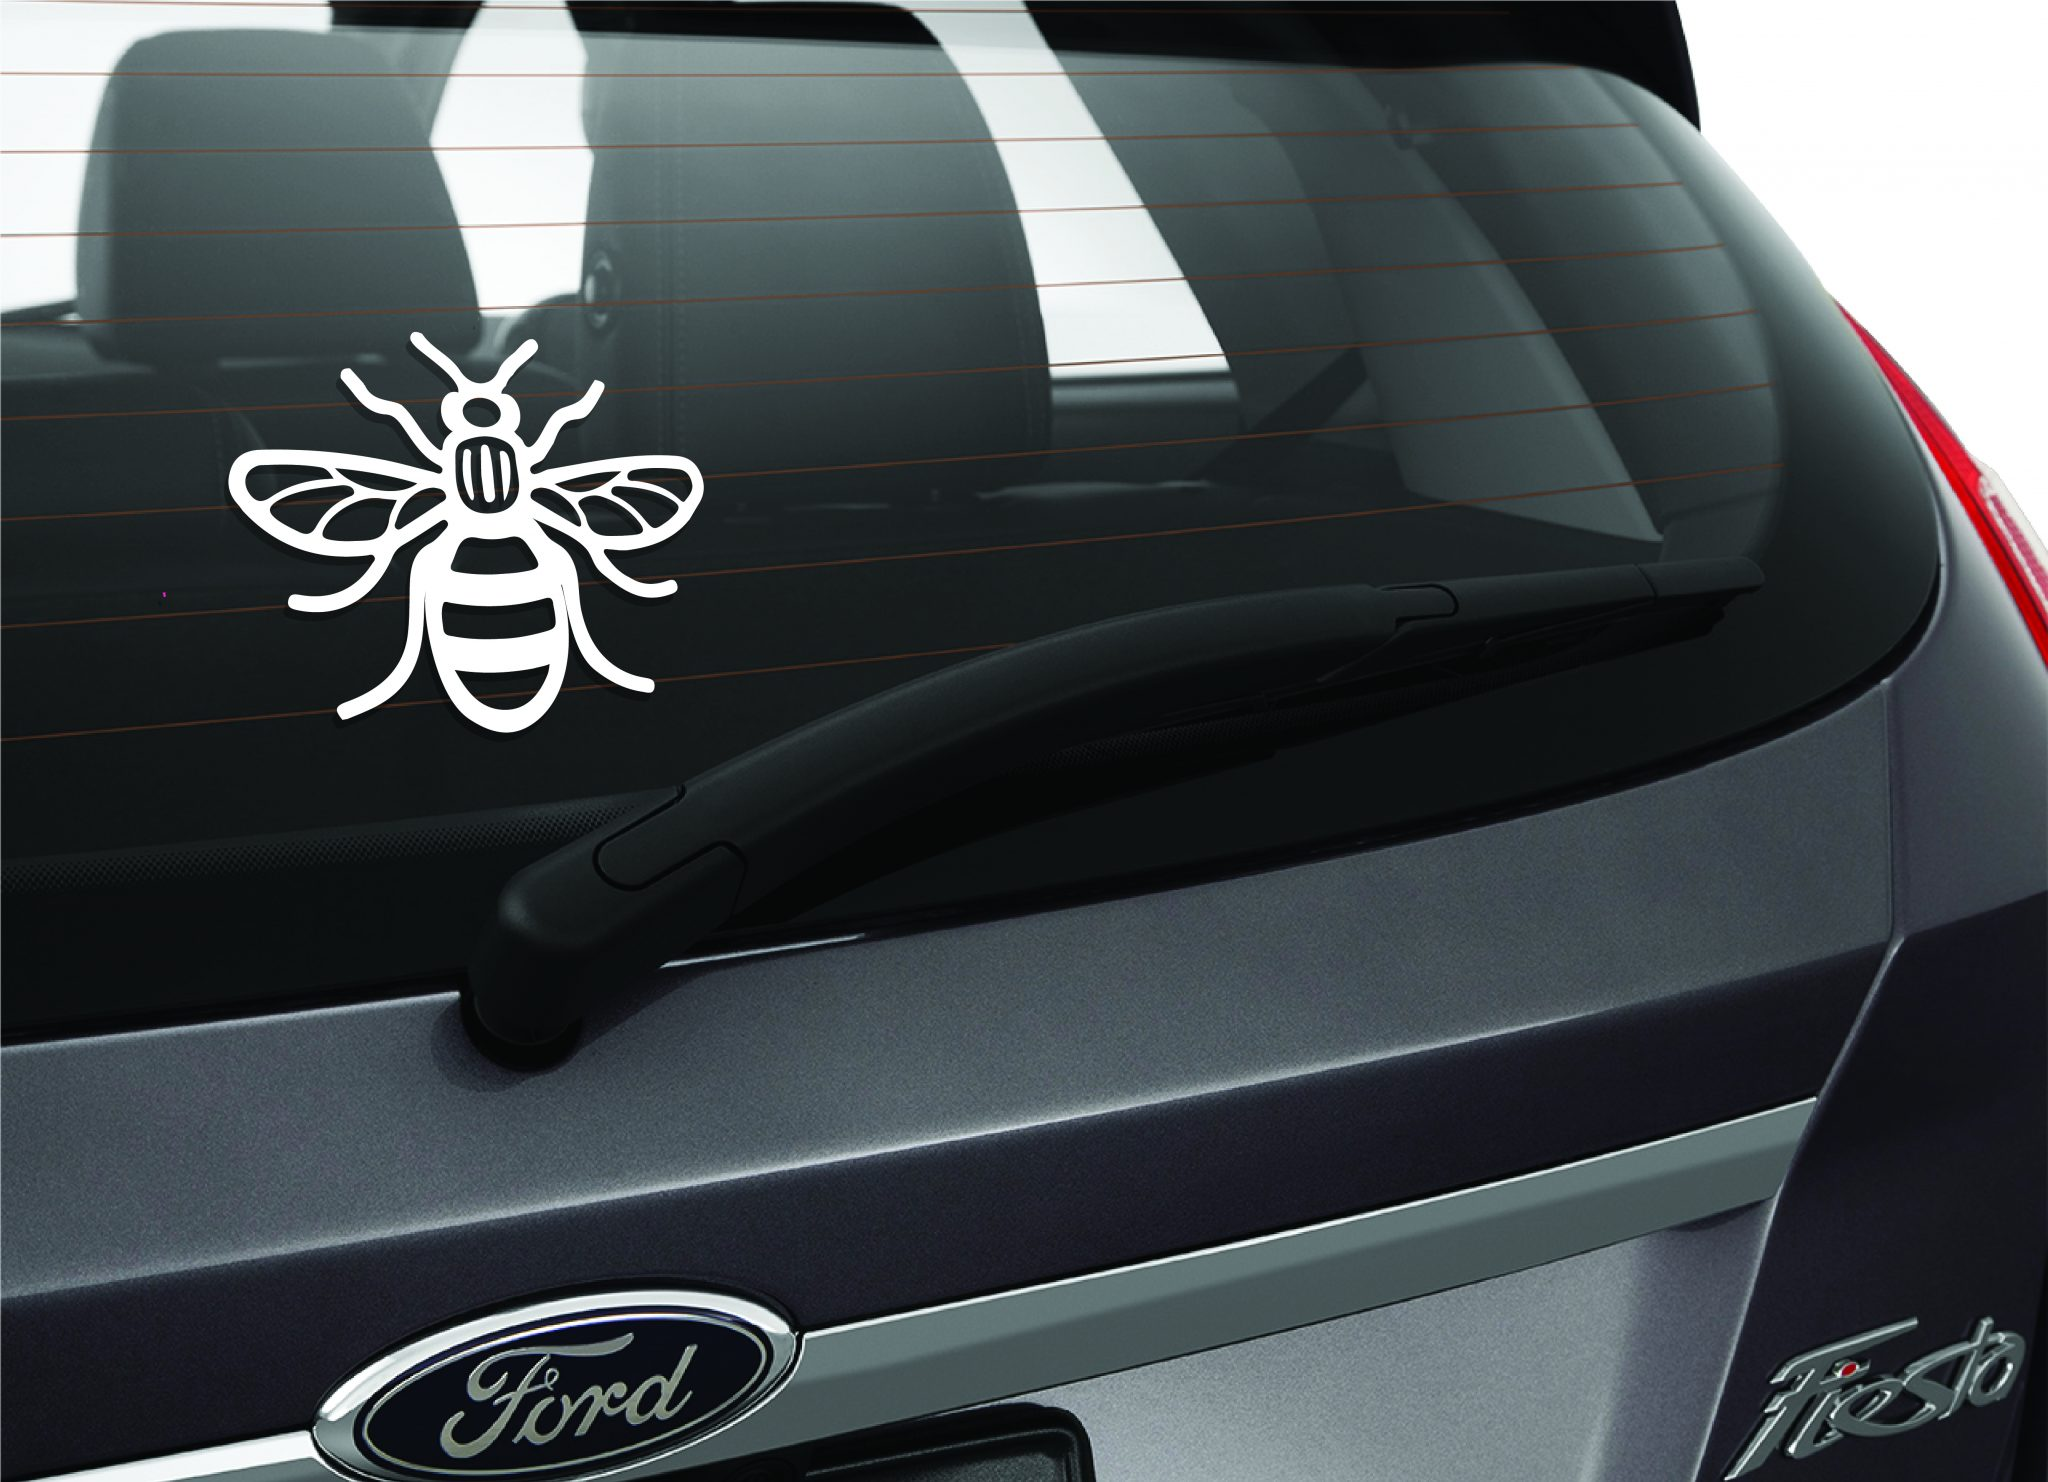 manchester bee car sticker free manchester bee car stickers. Black Bedroom Furniture Sets. Home Design Ideas